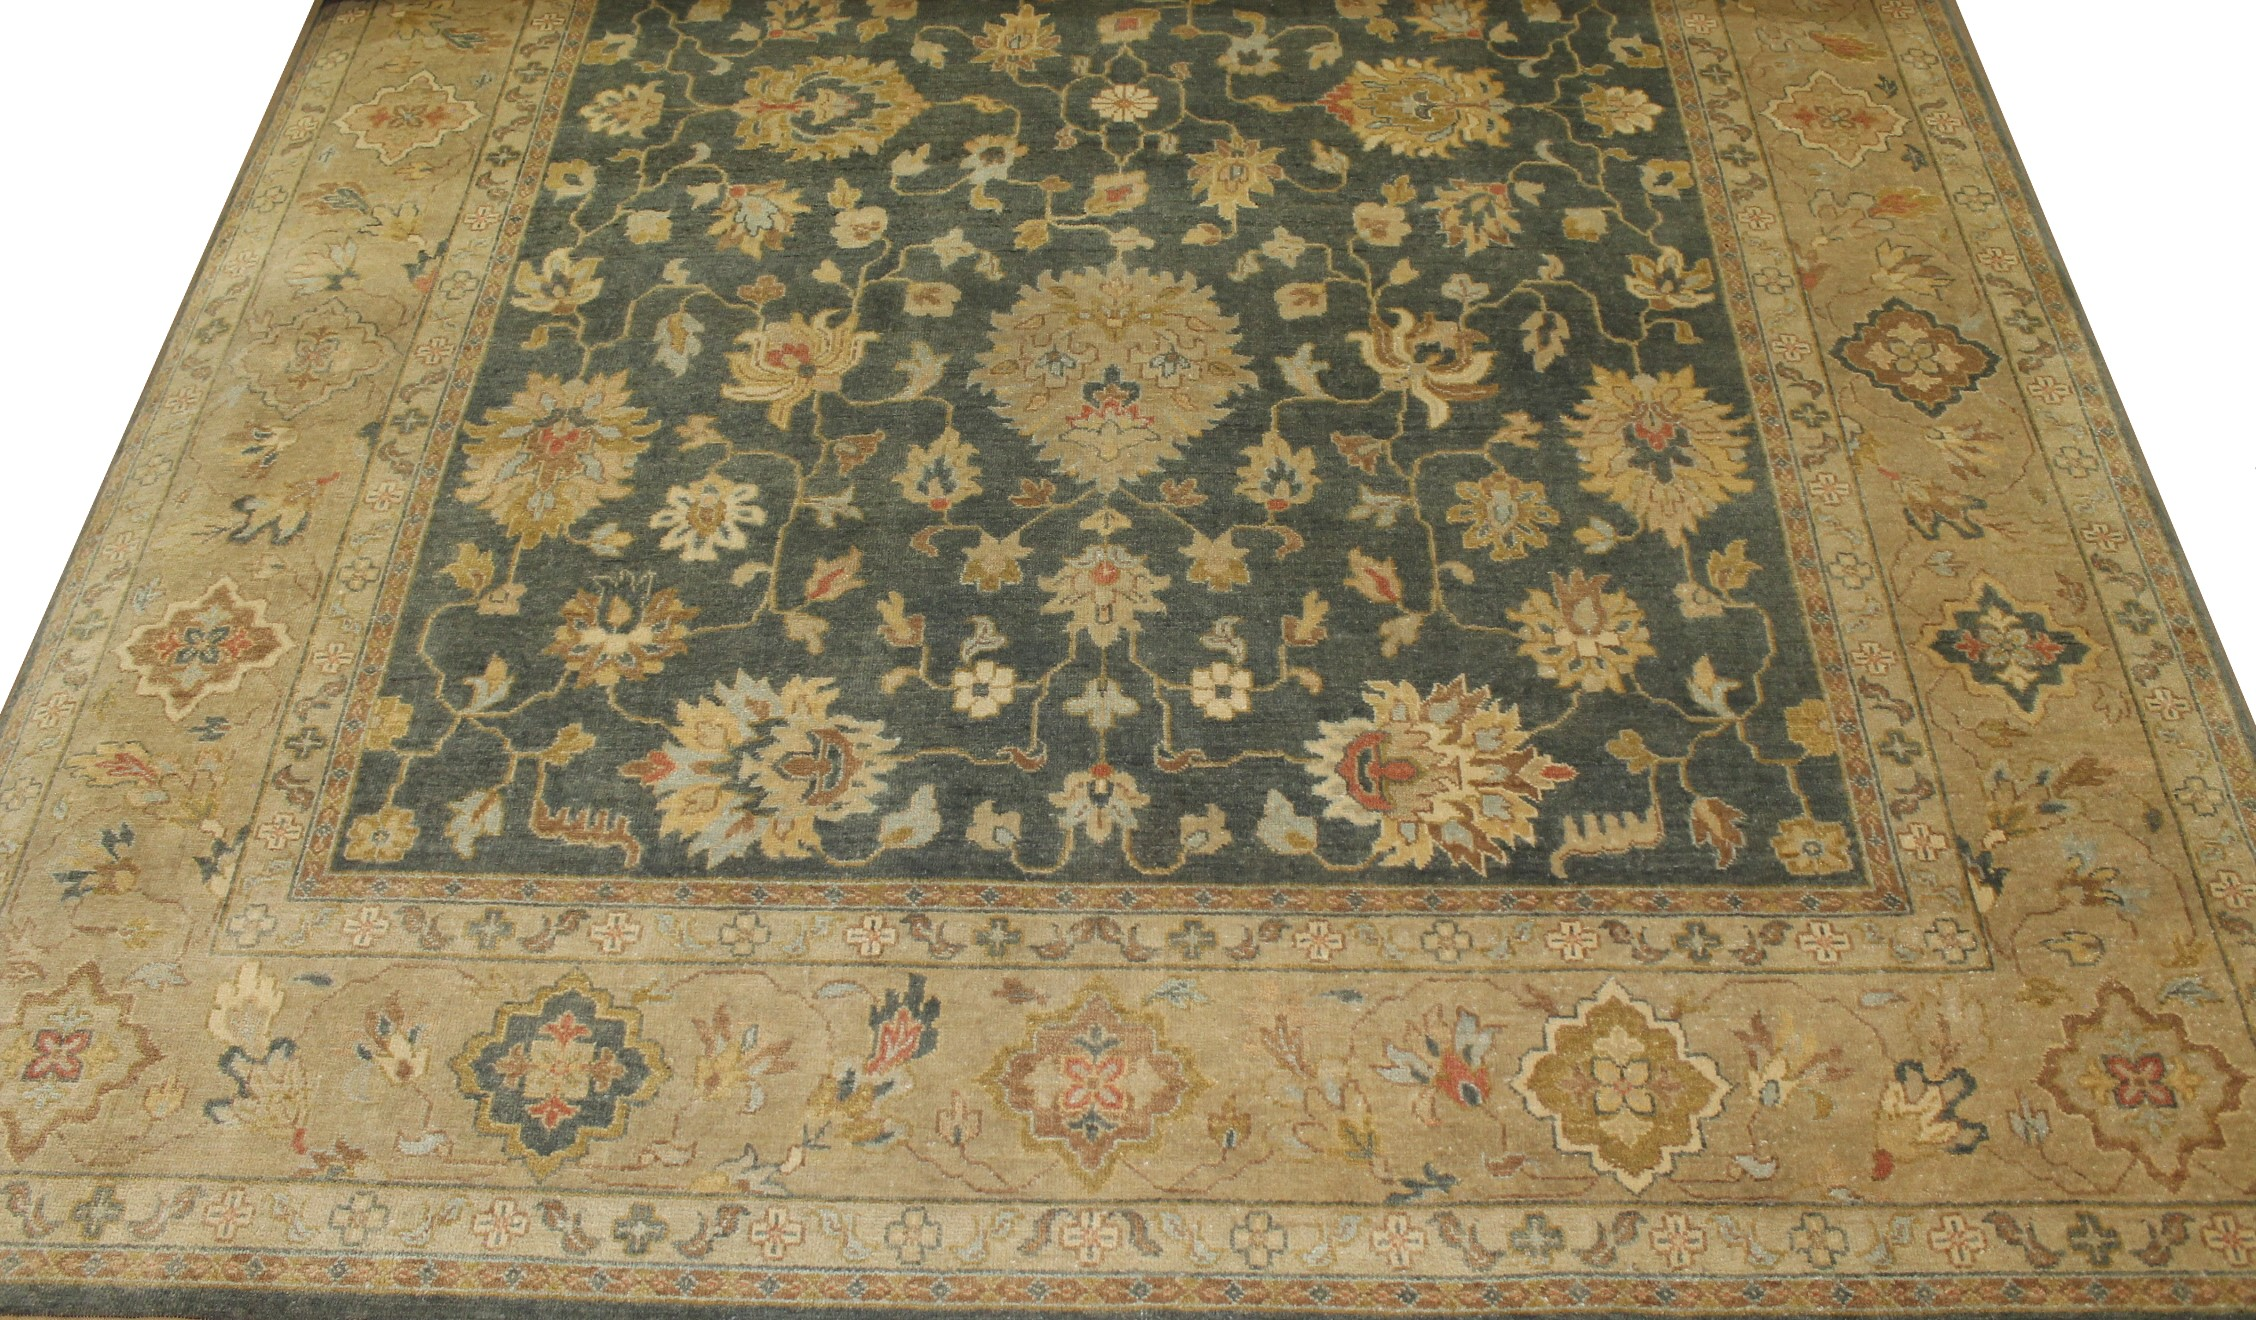 10x14 Traditional Hand Knotted Wool Area Rug - MR19922